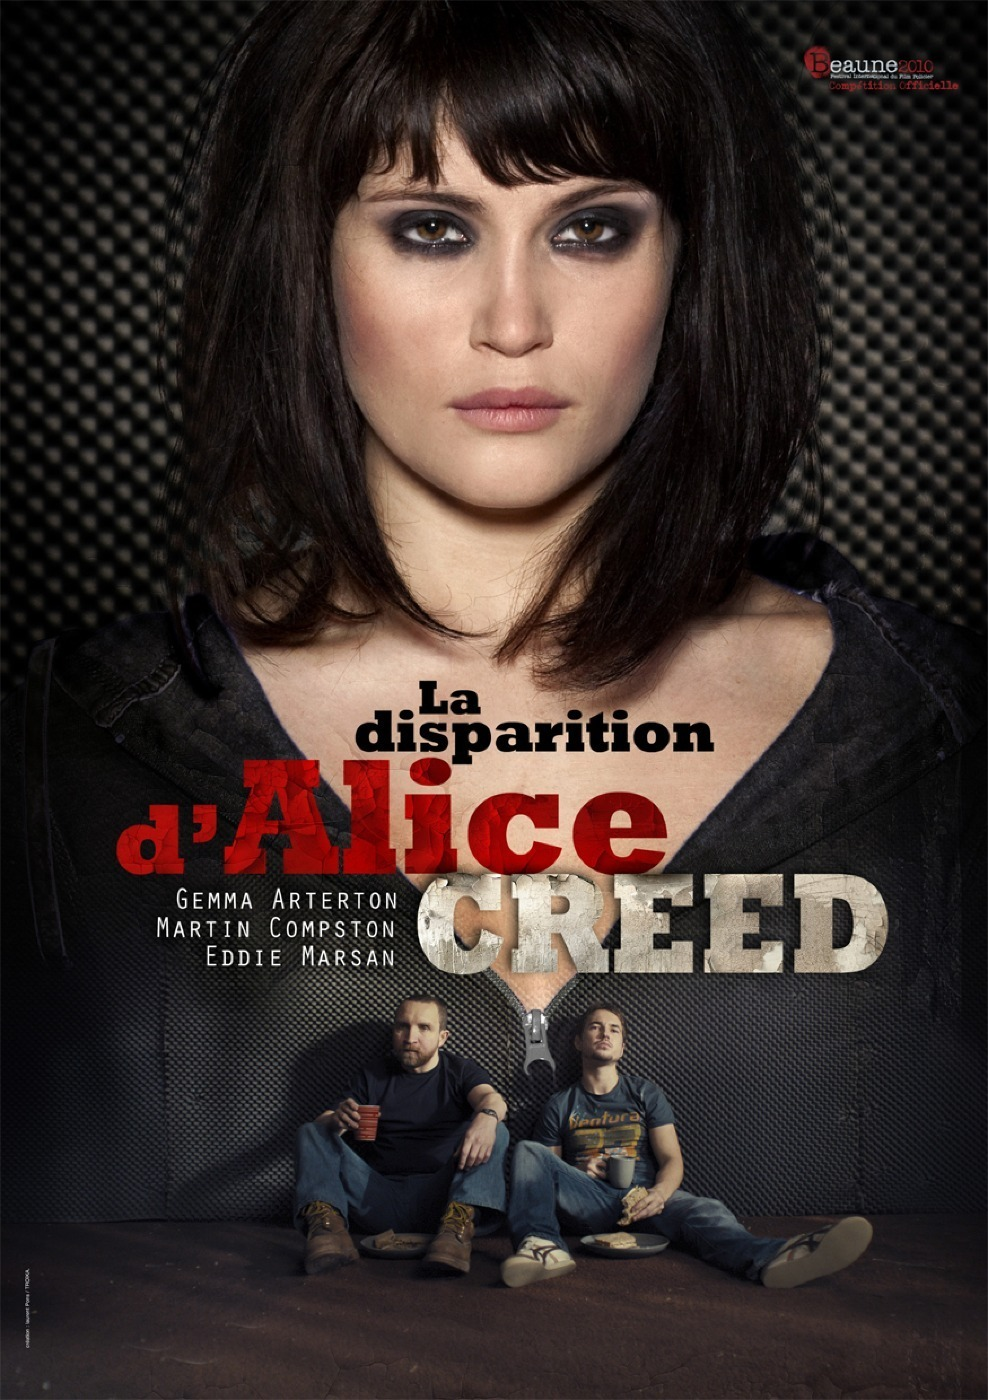 Gemma arterton disappearance of alice creed